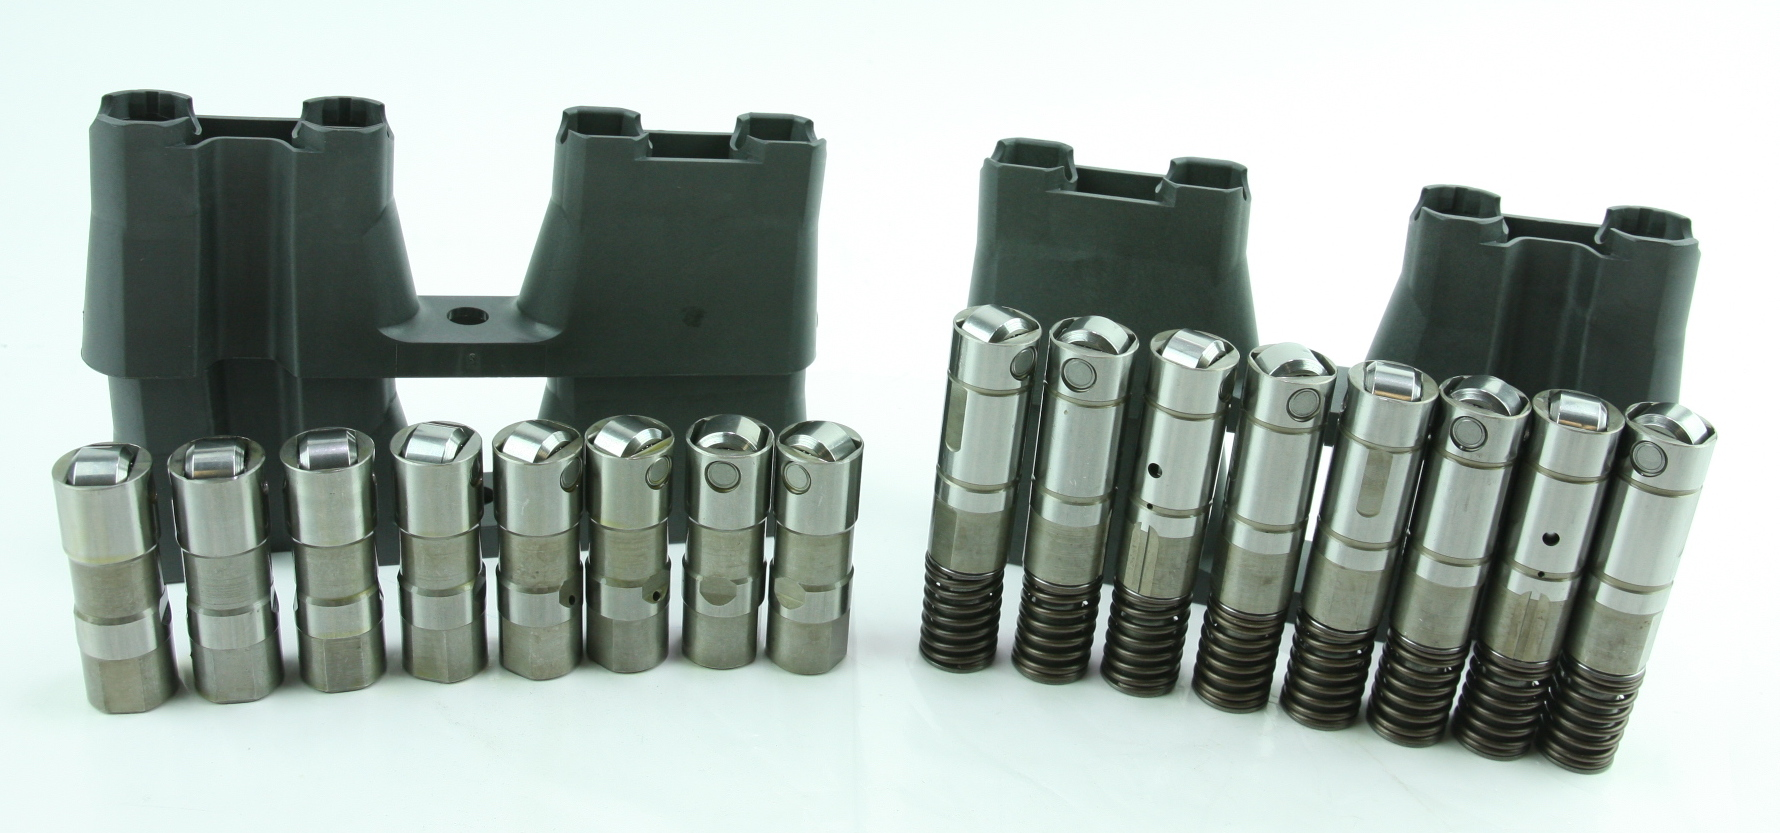 16 Genuine OEM GM Valve Lifters for LS 5.3 6.0L w/ AFM DOD & 4 Guides Trays New - image 1